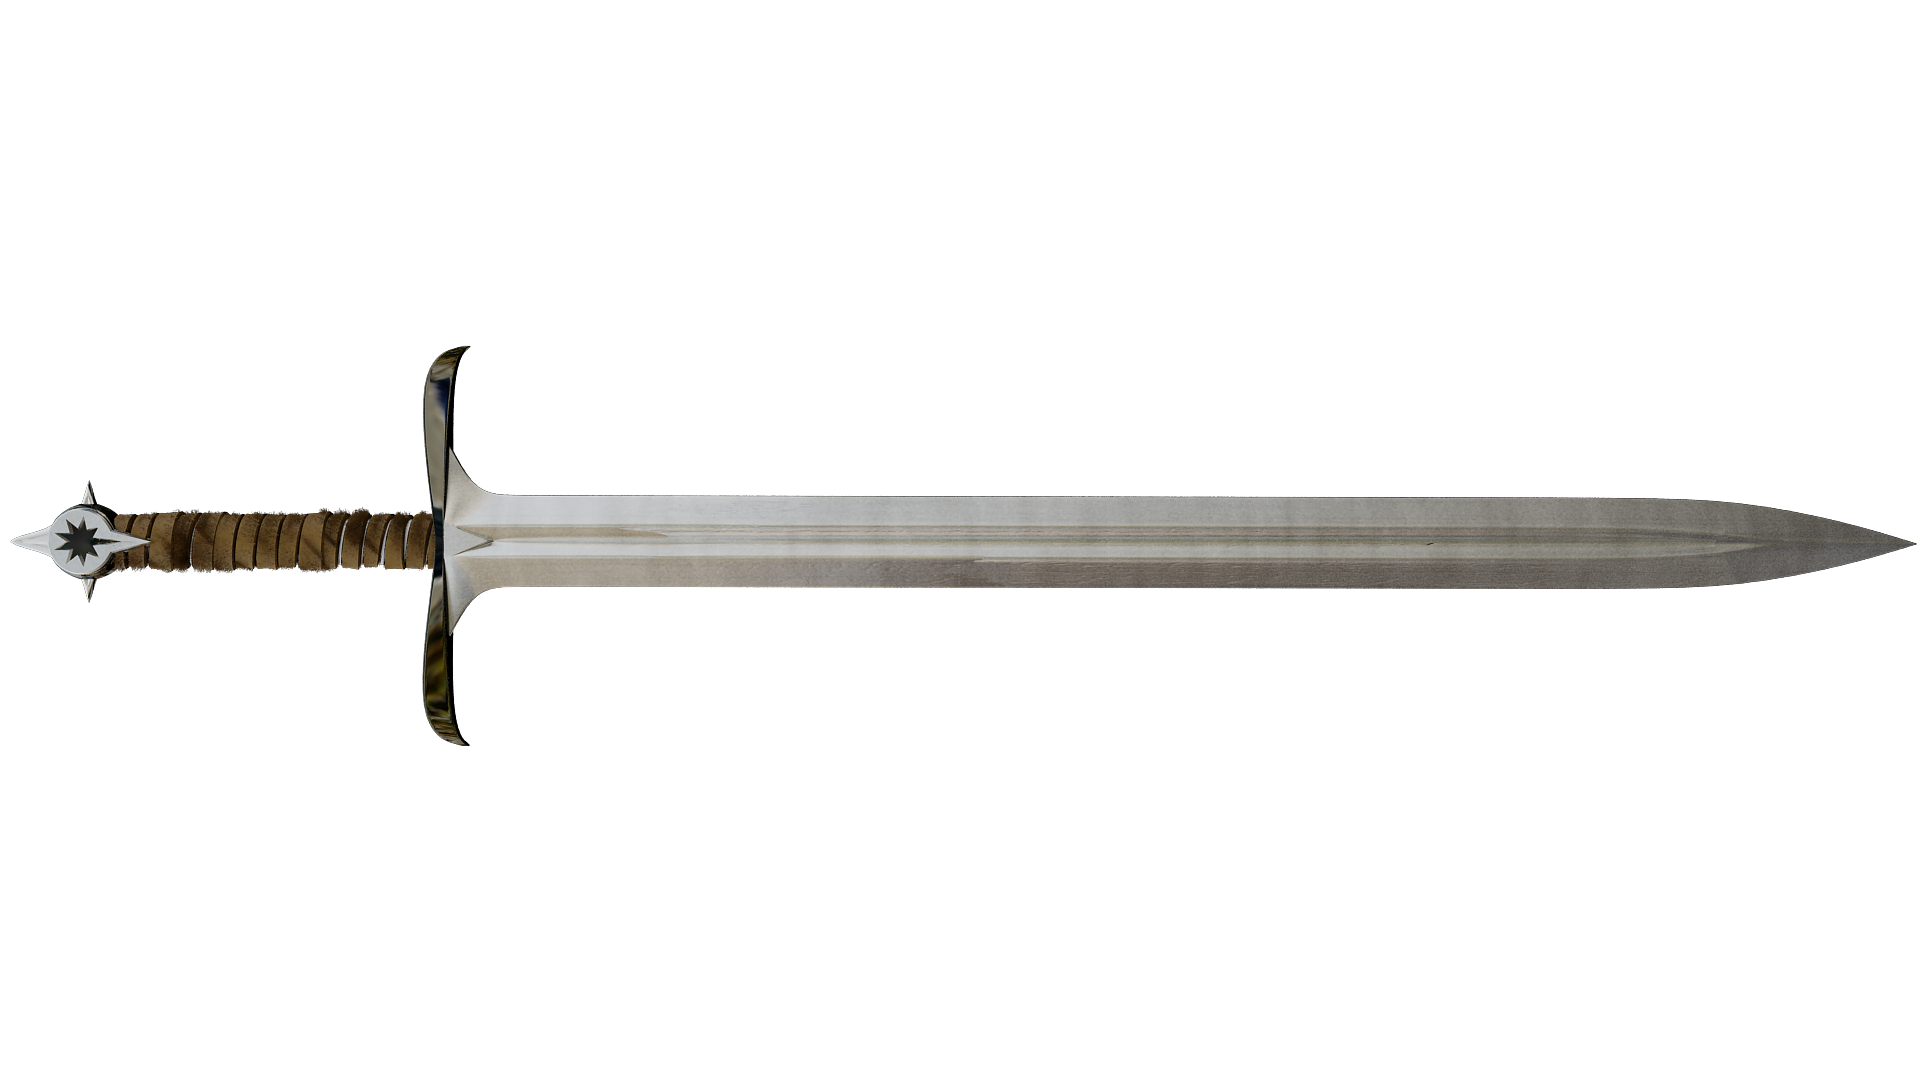 Under the Moon Sword-hd-png-sword-png-image-1920